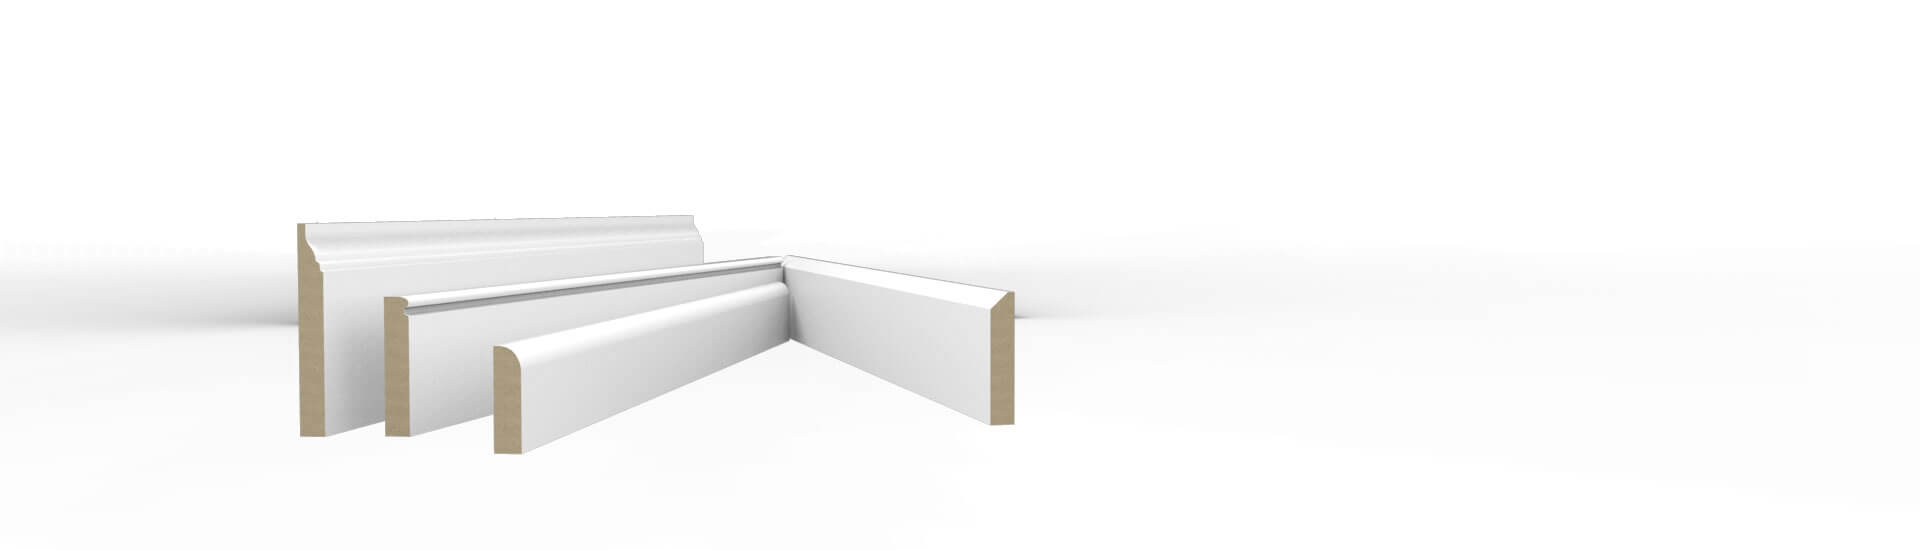 Small MDF Skirting Boards